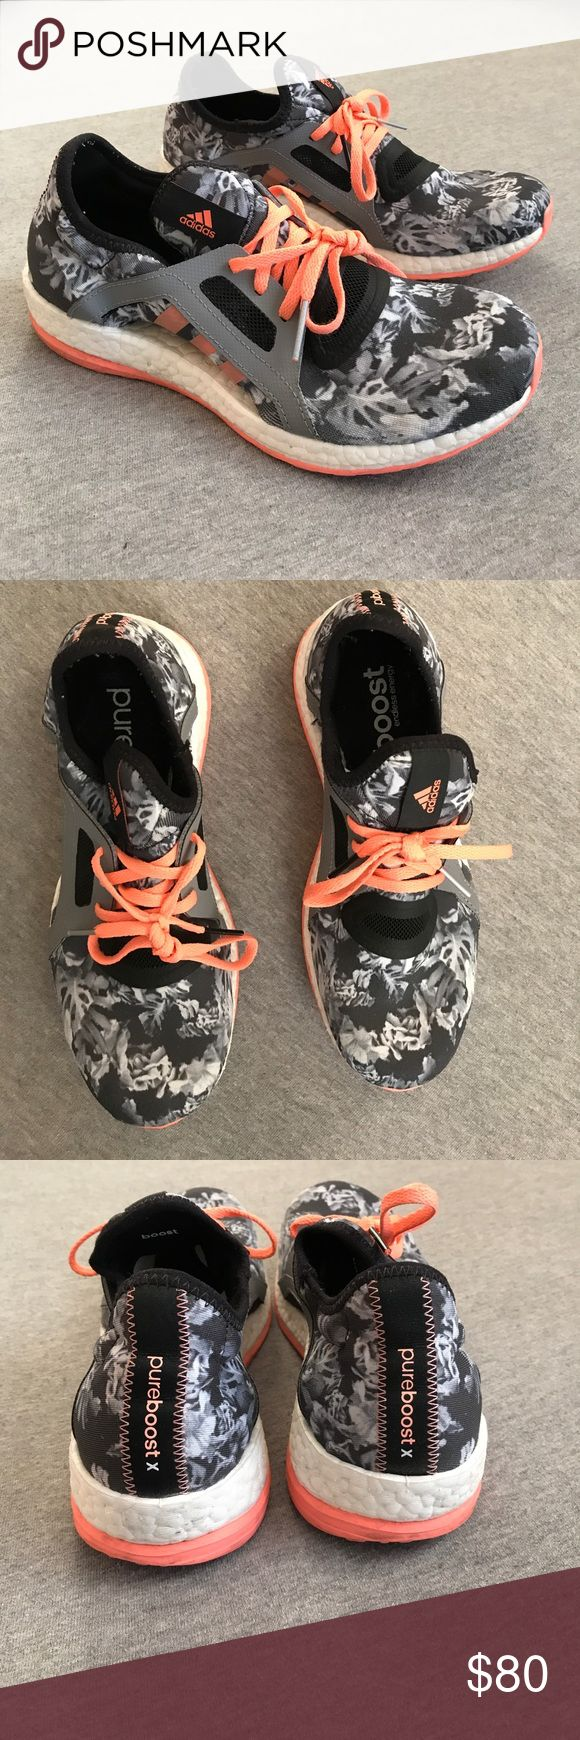 Adidas Pure Boost Gently used Adidas Pure Boost tennis shoes. Only worn a few times on a track! Pretty black and white abstract Floral pattern with pops of coral! adidas Shoes Athletic Shoes